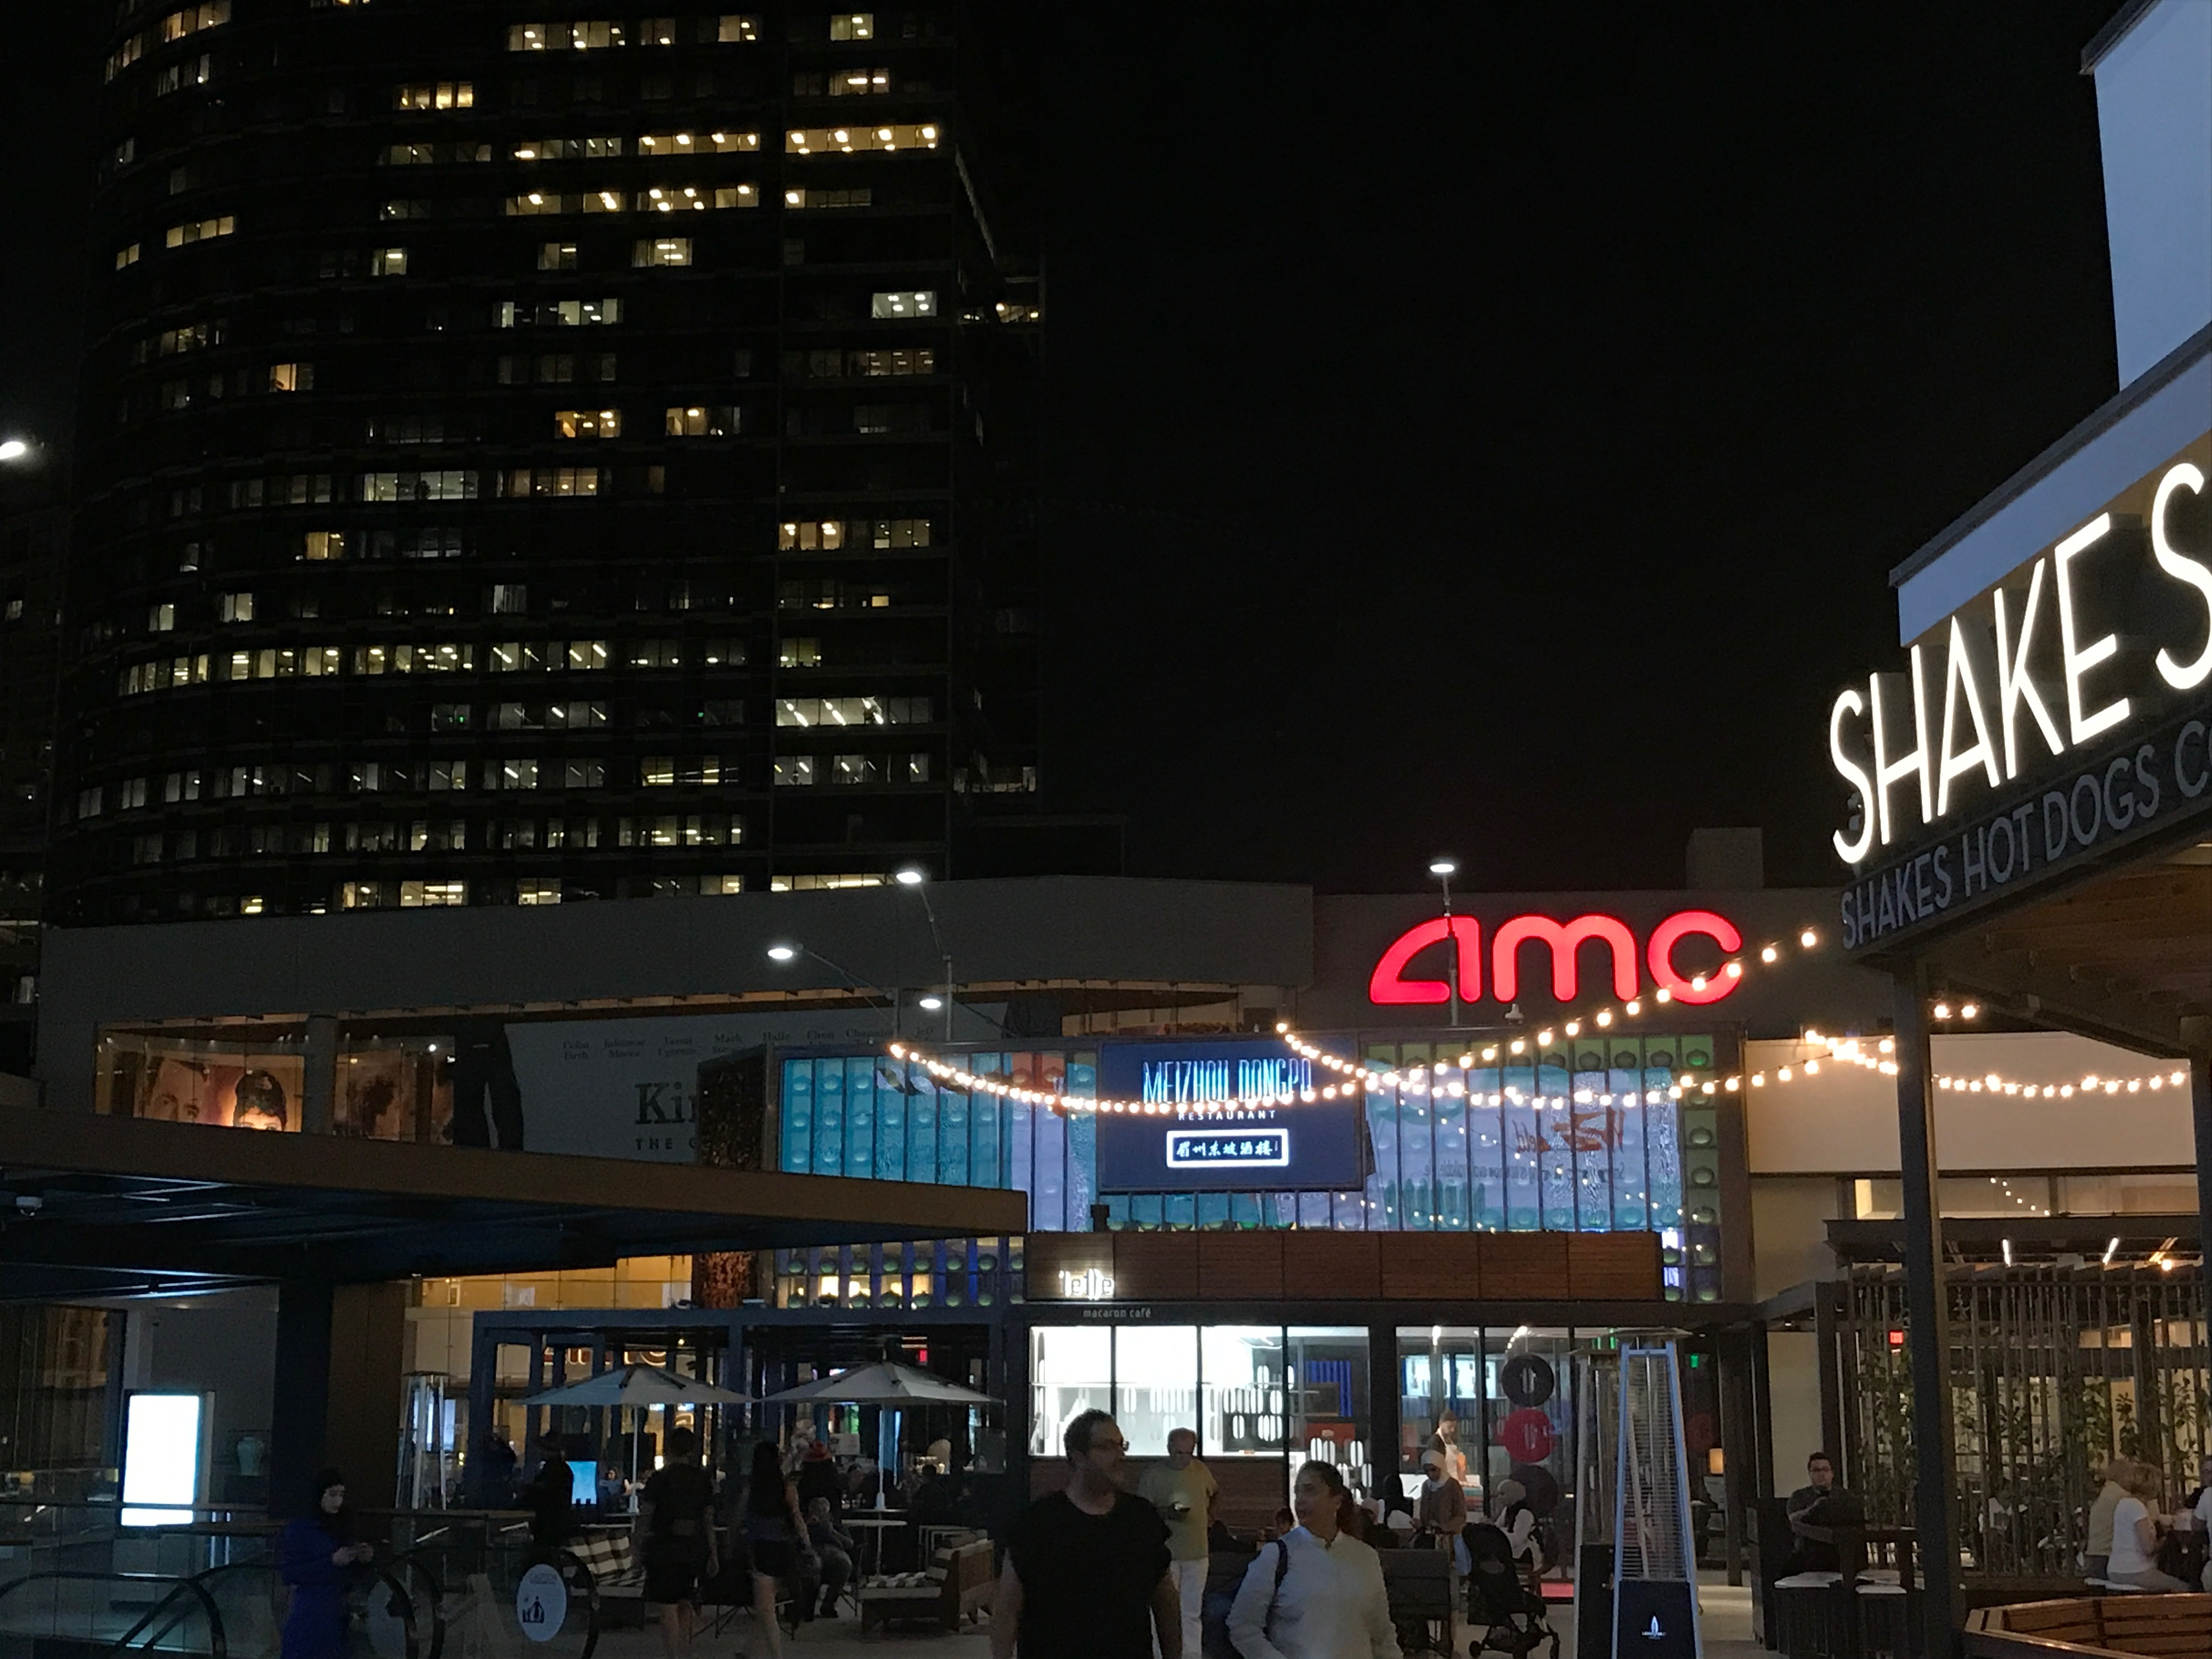 The movie theater lies just steps from the remodeled food court.